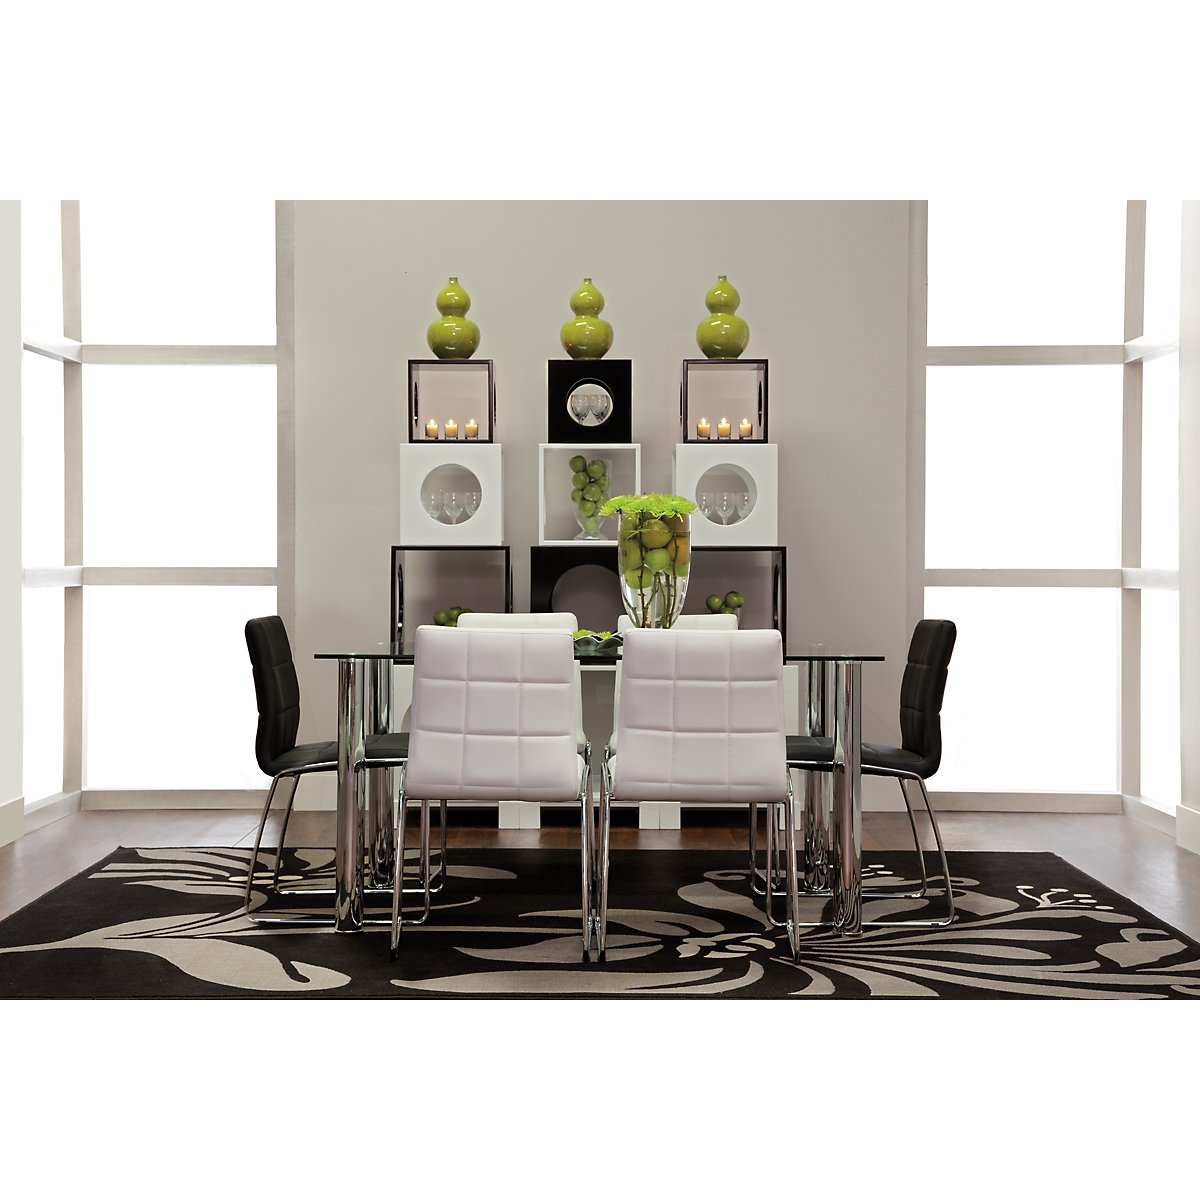 napoli white rect table & 4 chairs